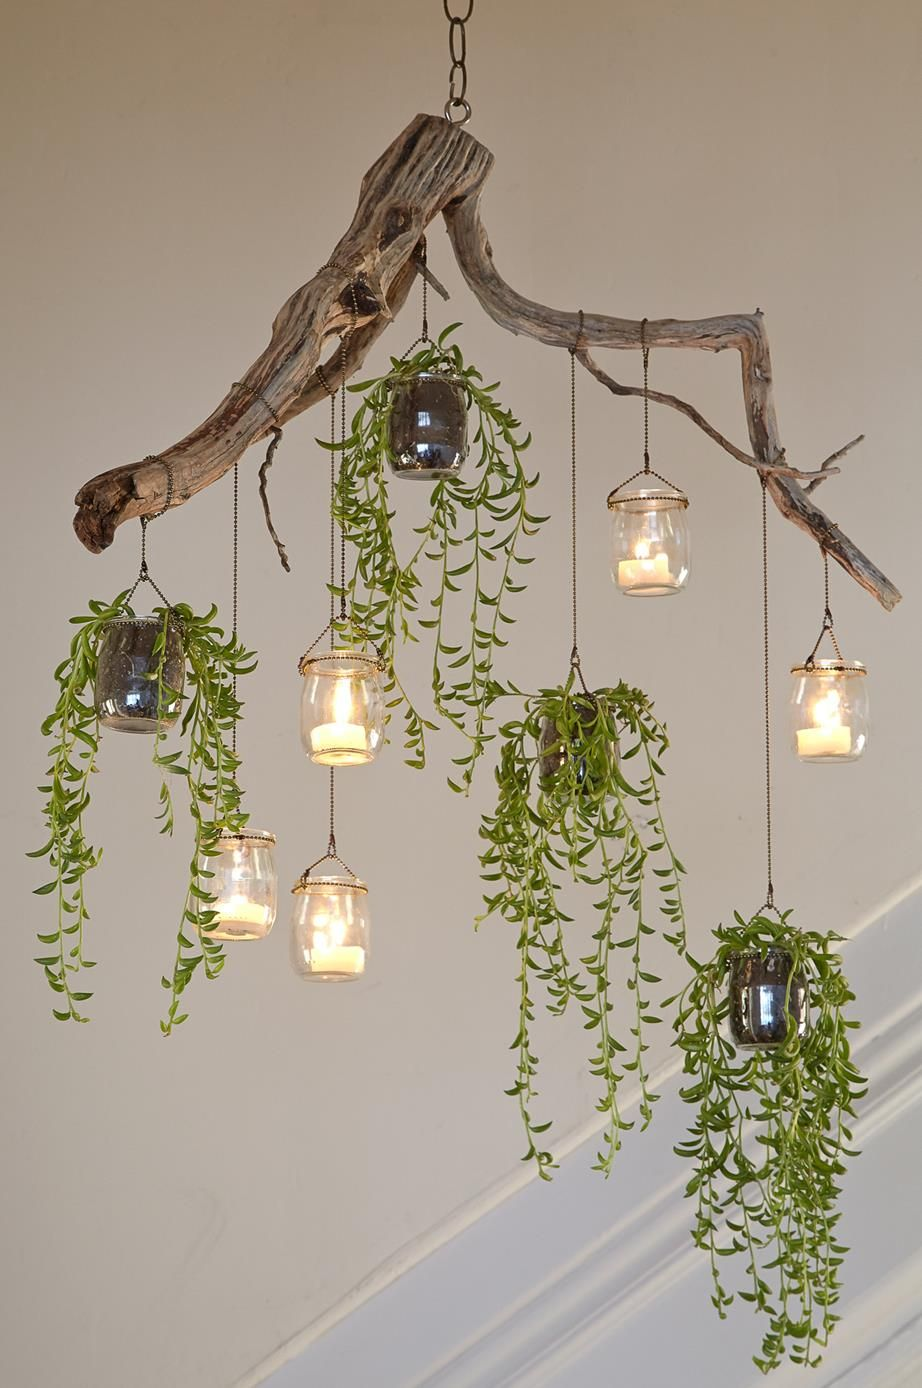 How to make a cascading plant chandelier #deckpatio